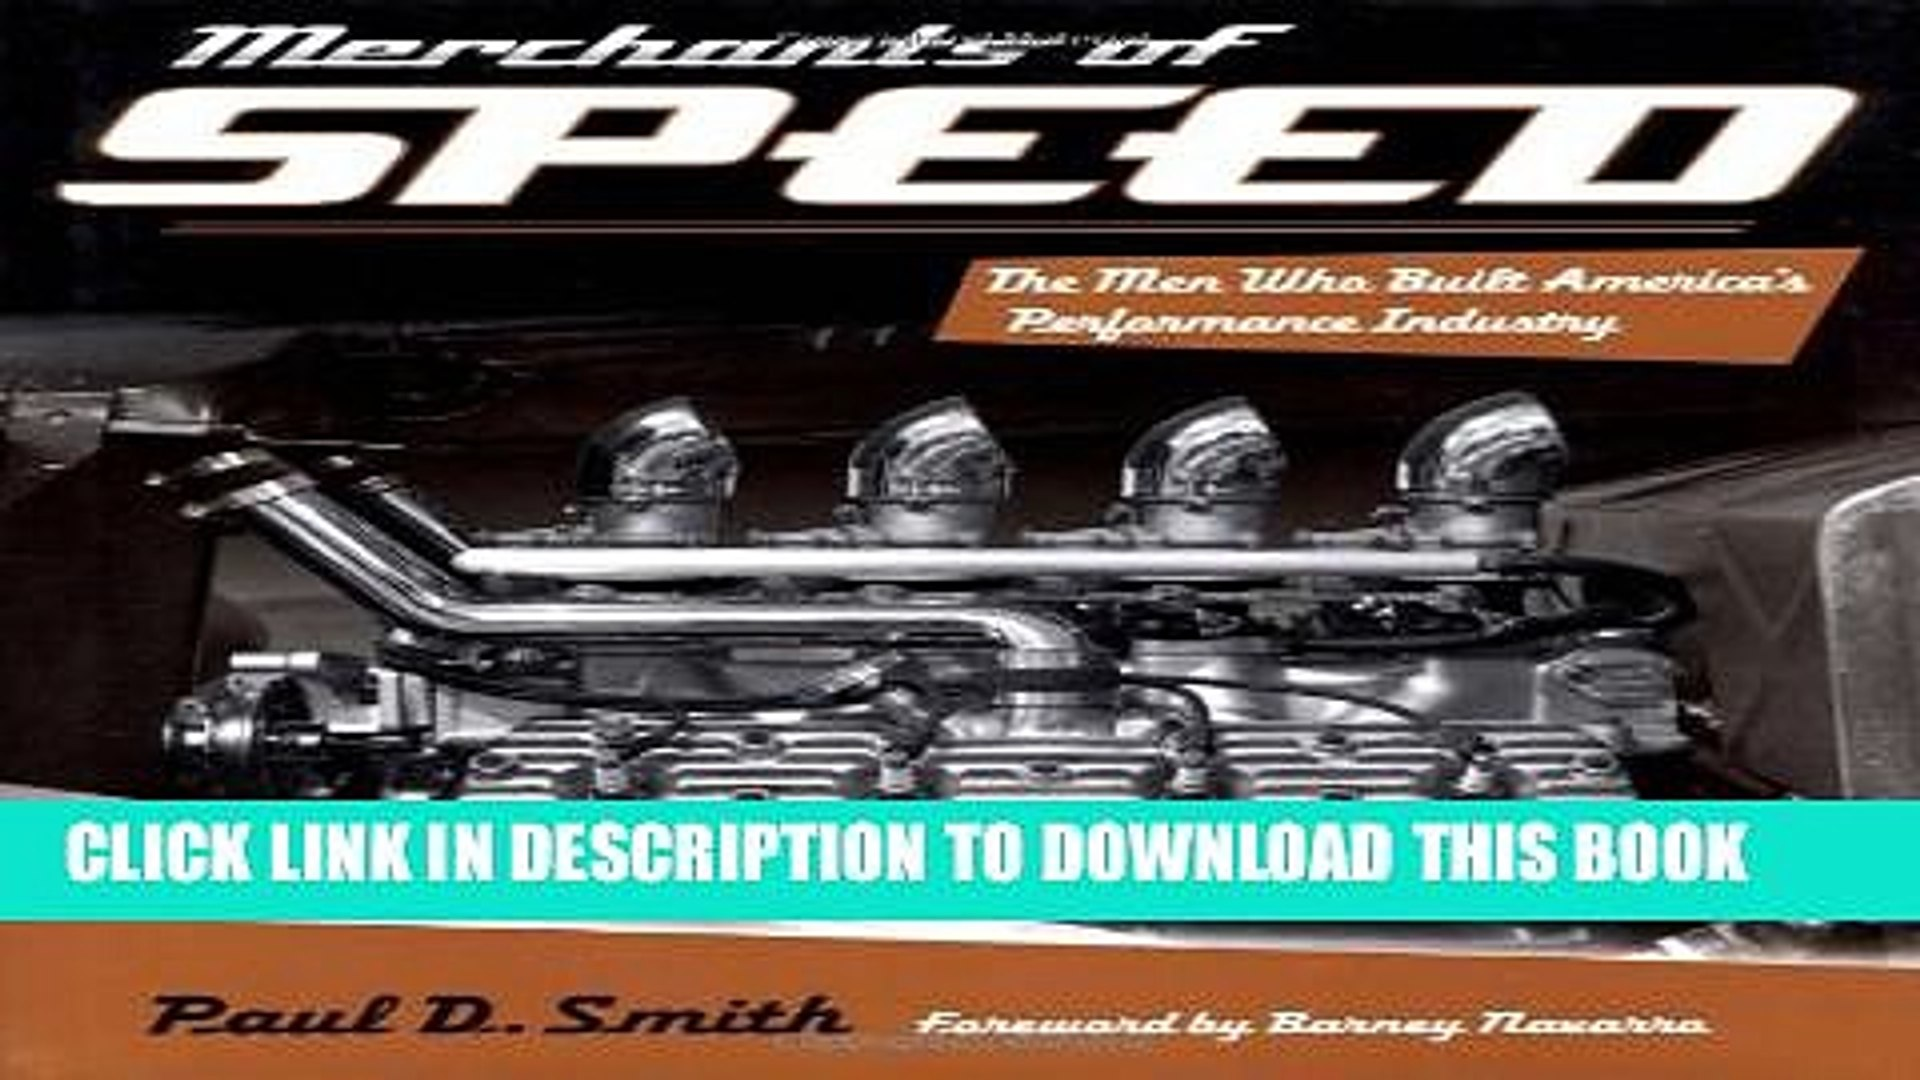 [DOWNLOAD] PDF Merchants of Speed: The Men Who Built America s Performance Industry Collection